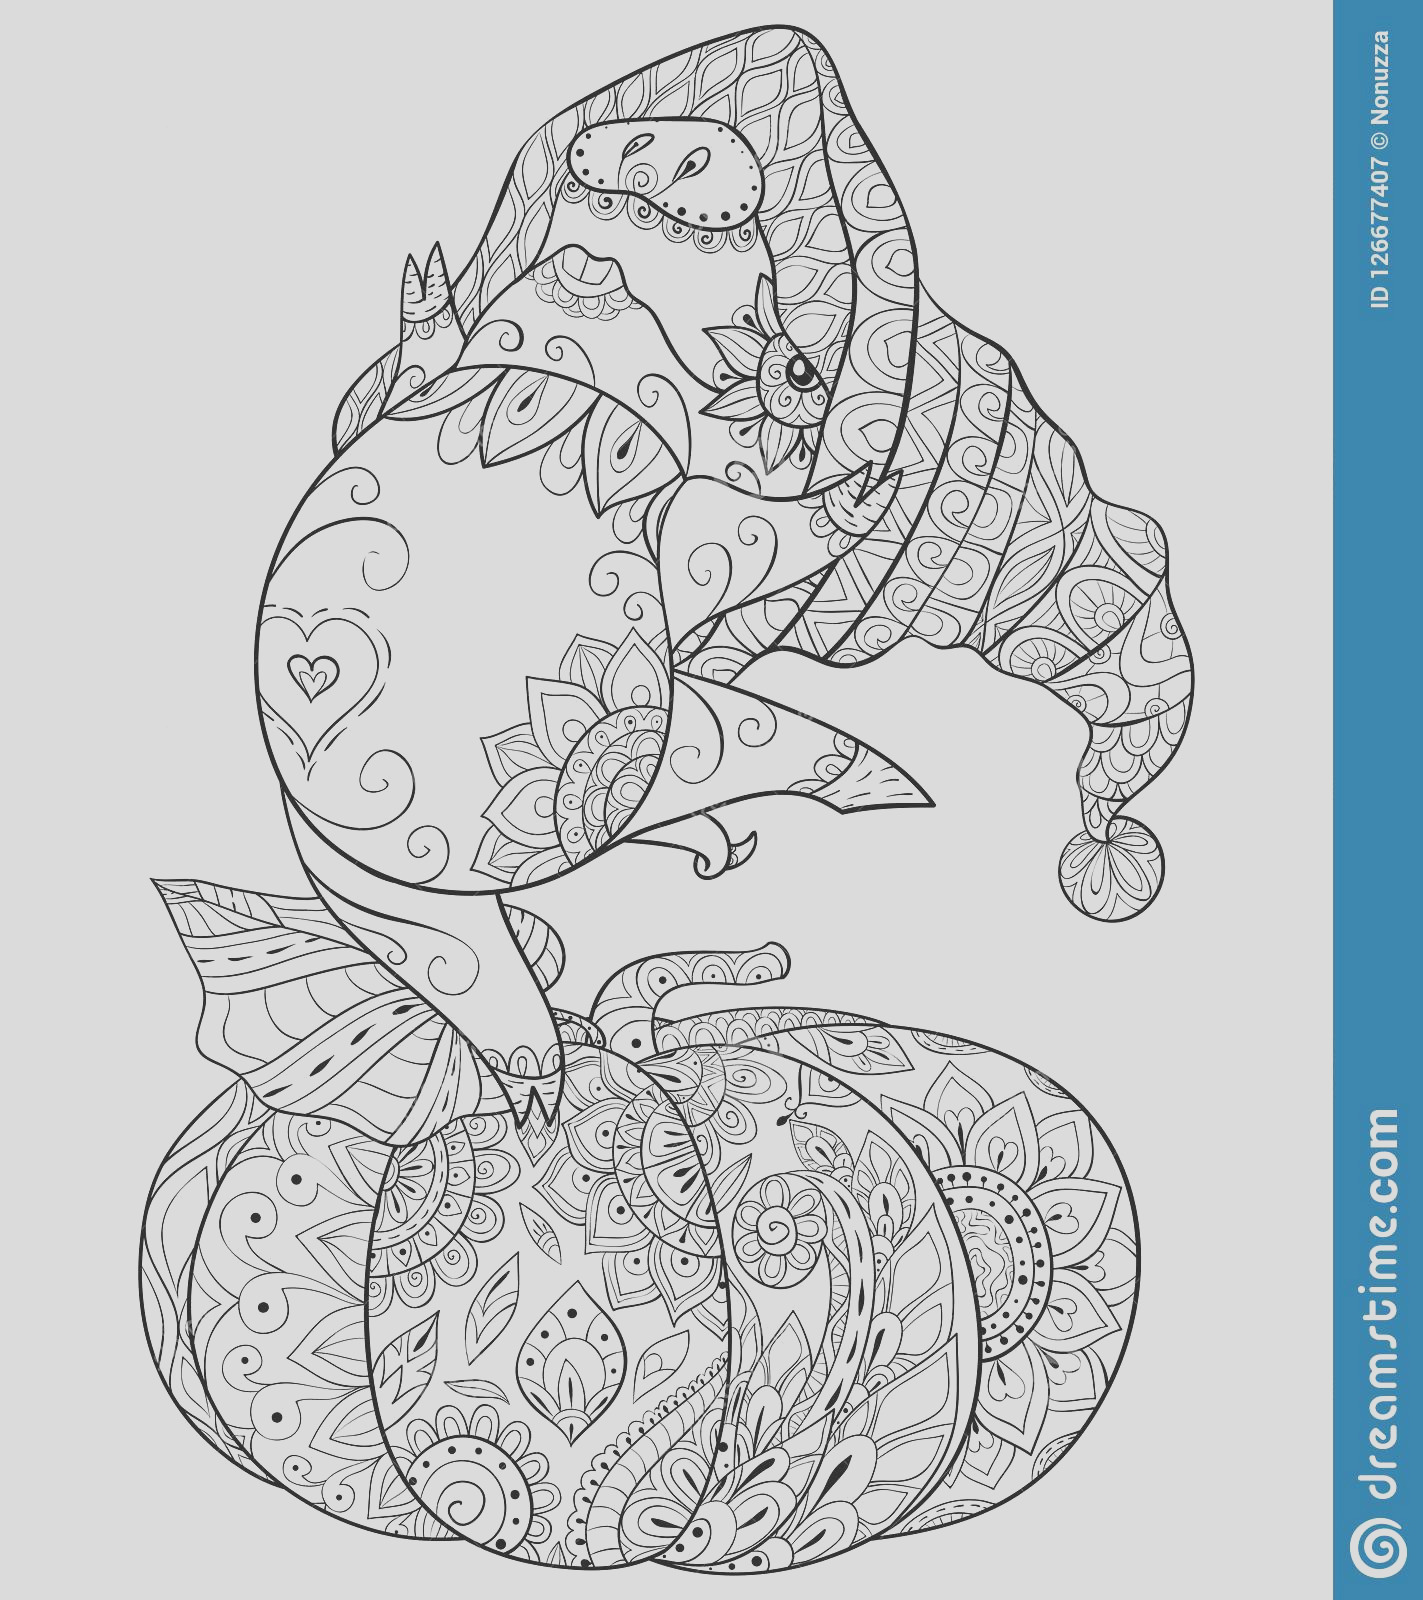 adult coloring book page halloween theme illustration relaxing cute dancing pig wearing halloween hat pumpkin image